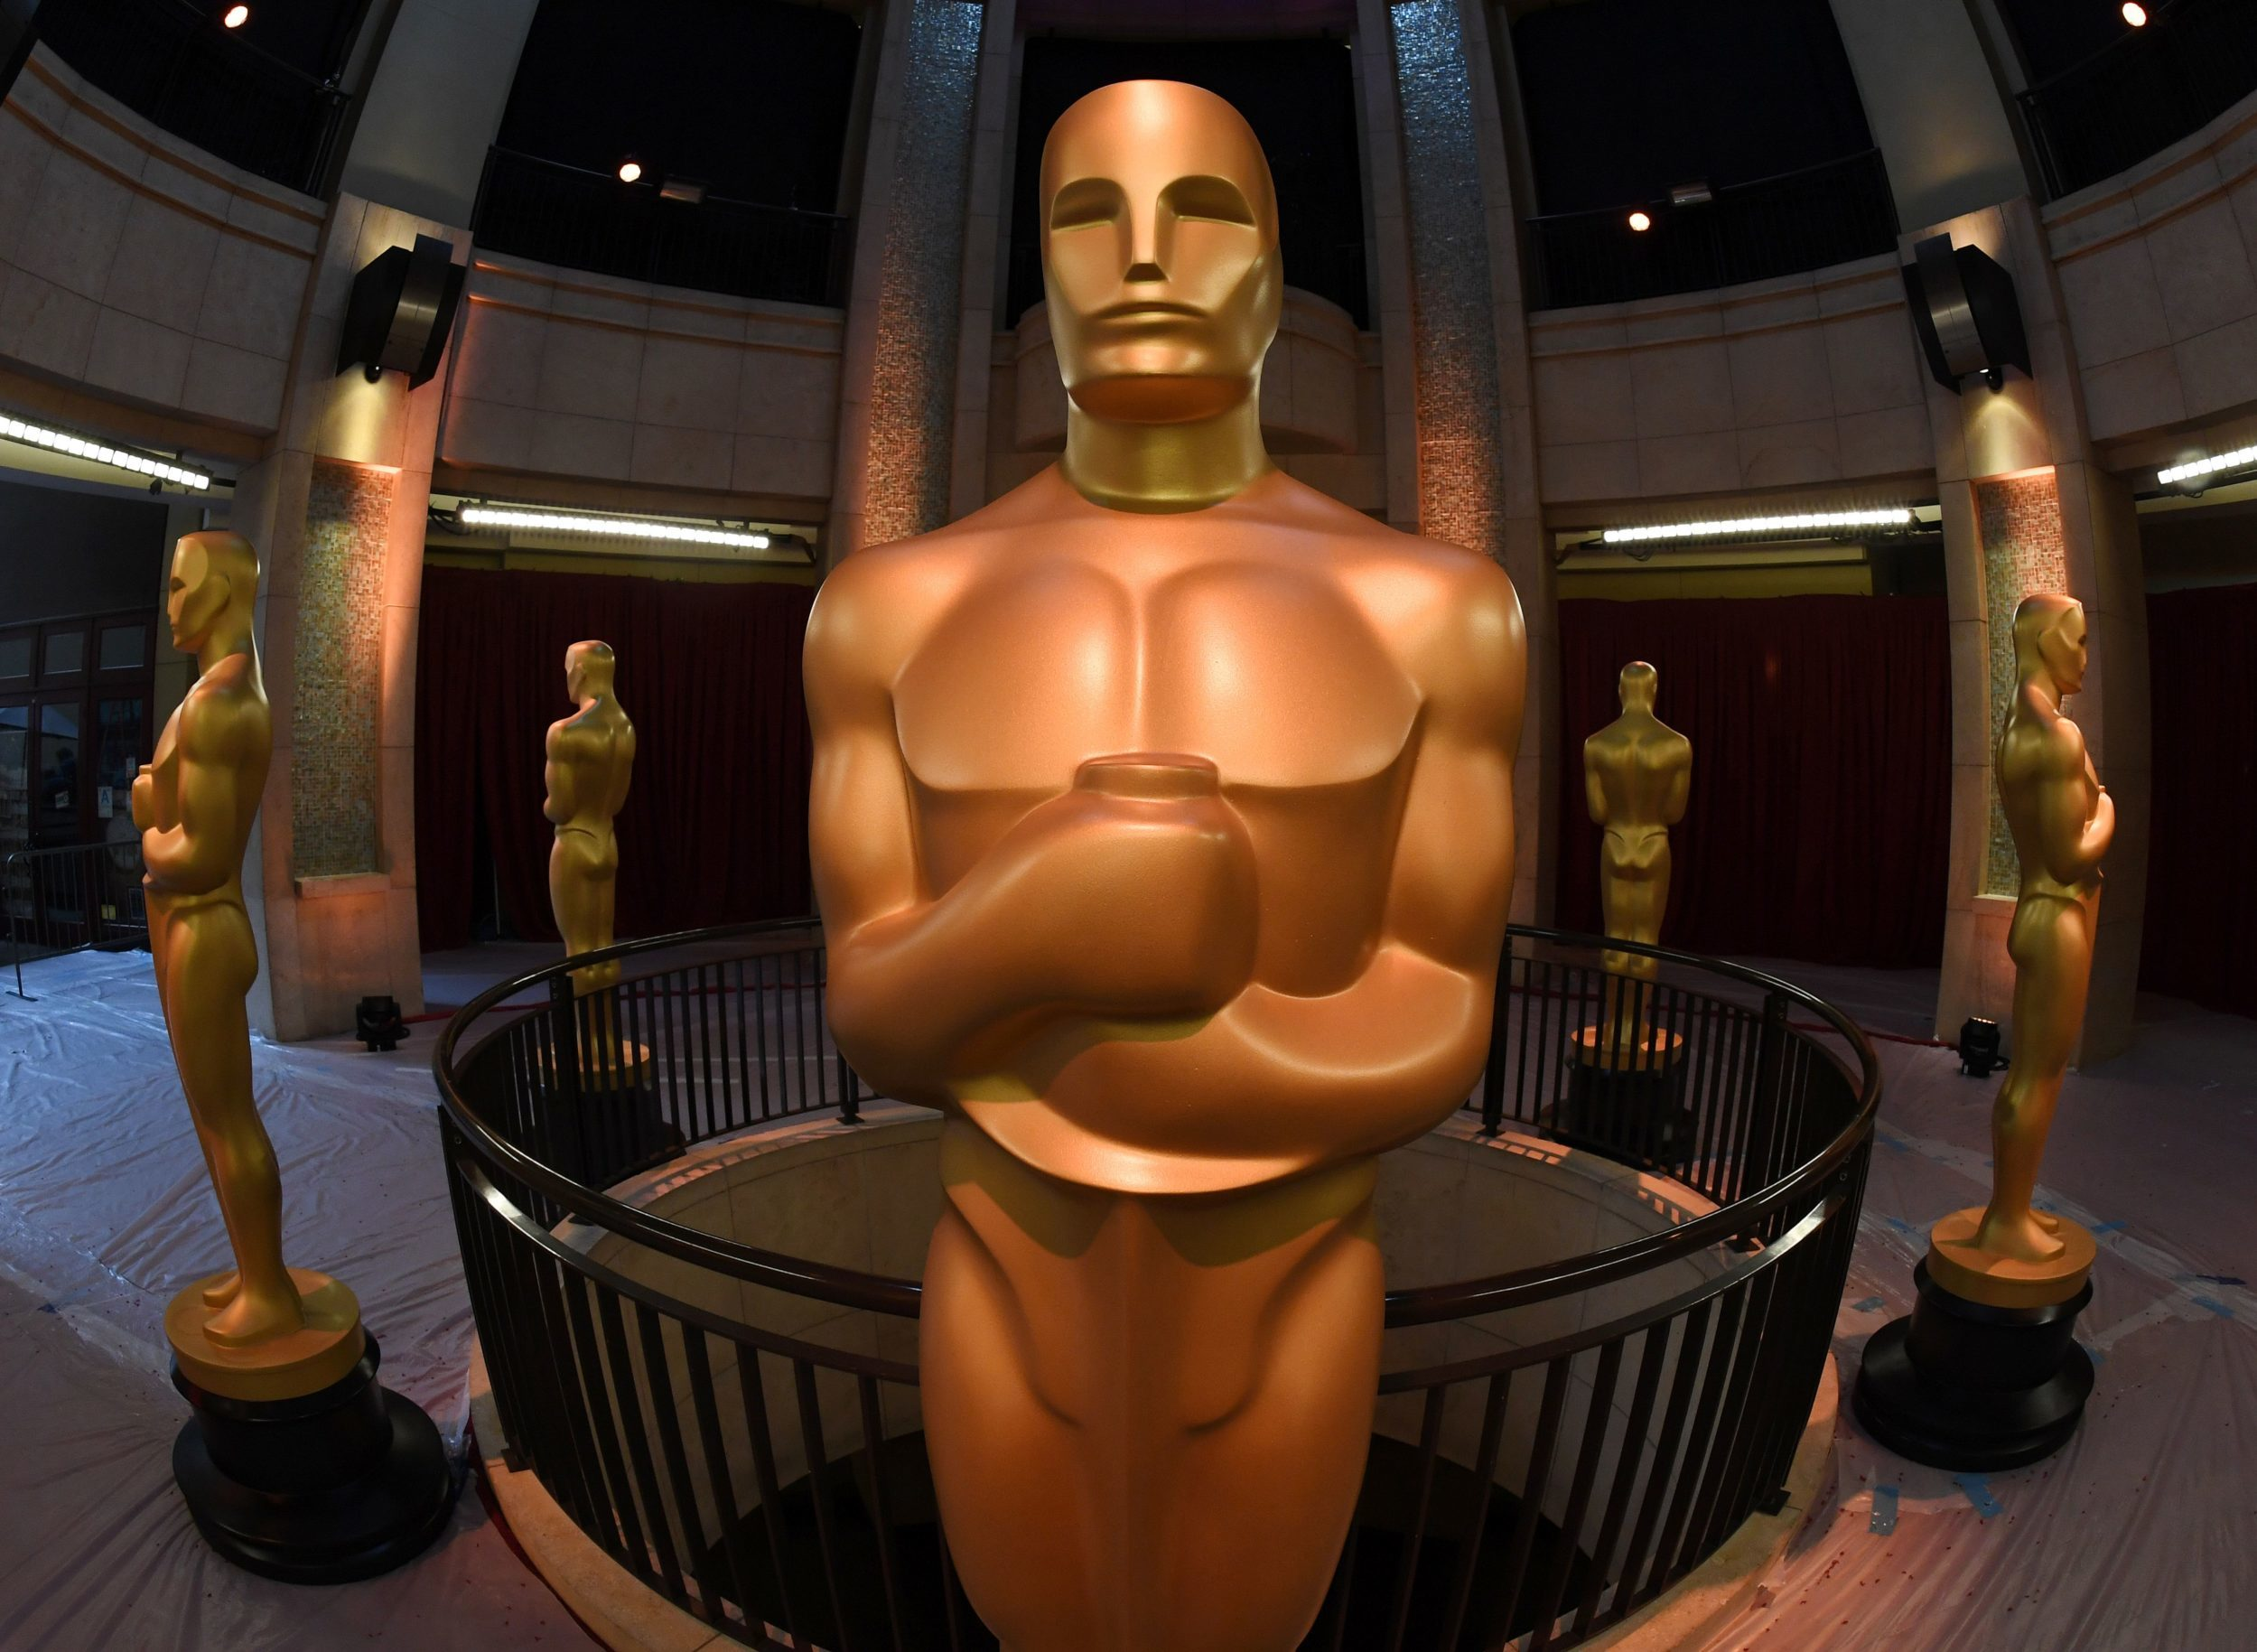 Where are the Oscars being held? The venue is fit for Hollywood royalty